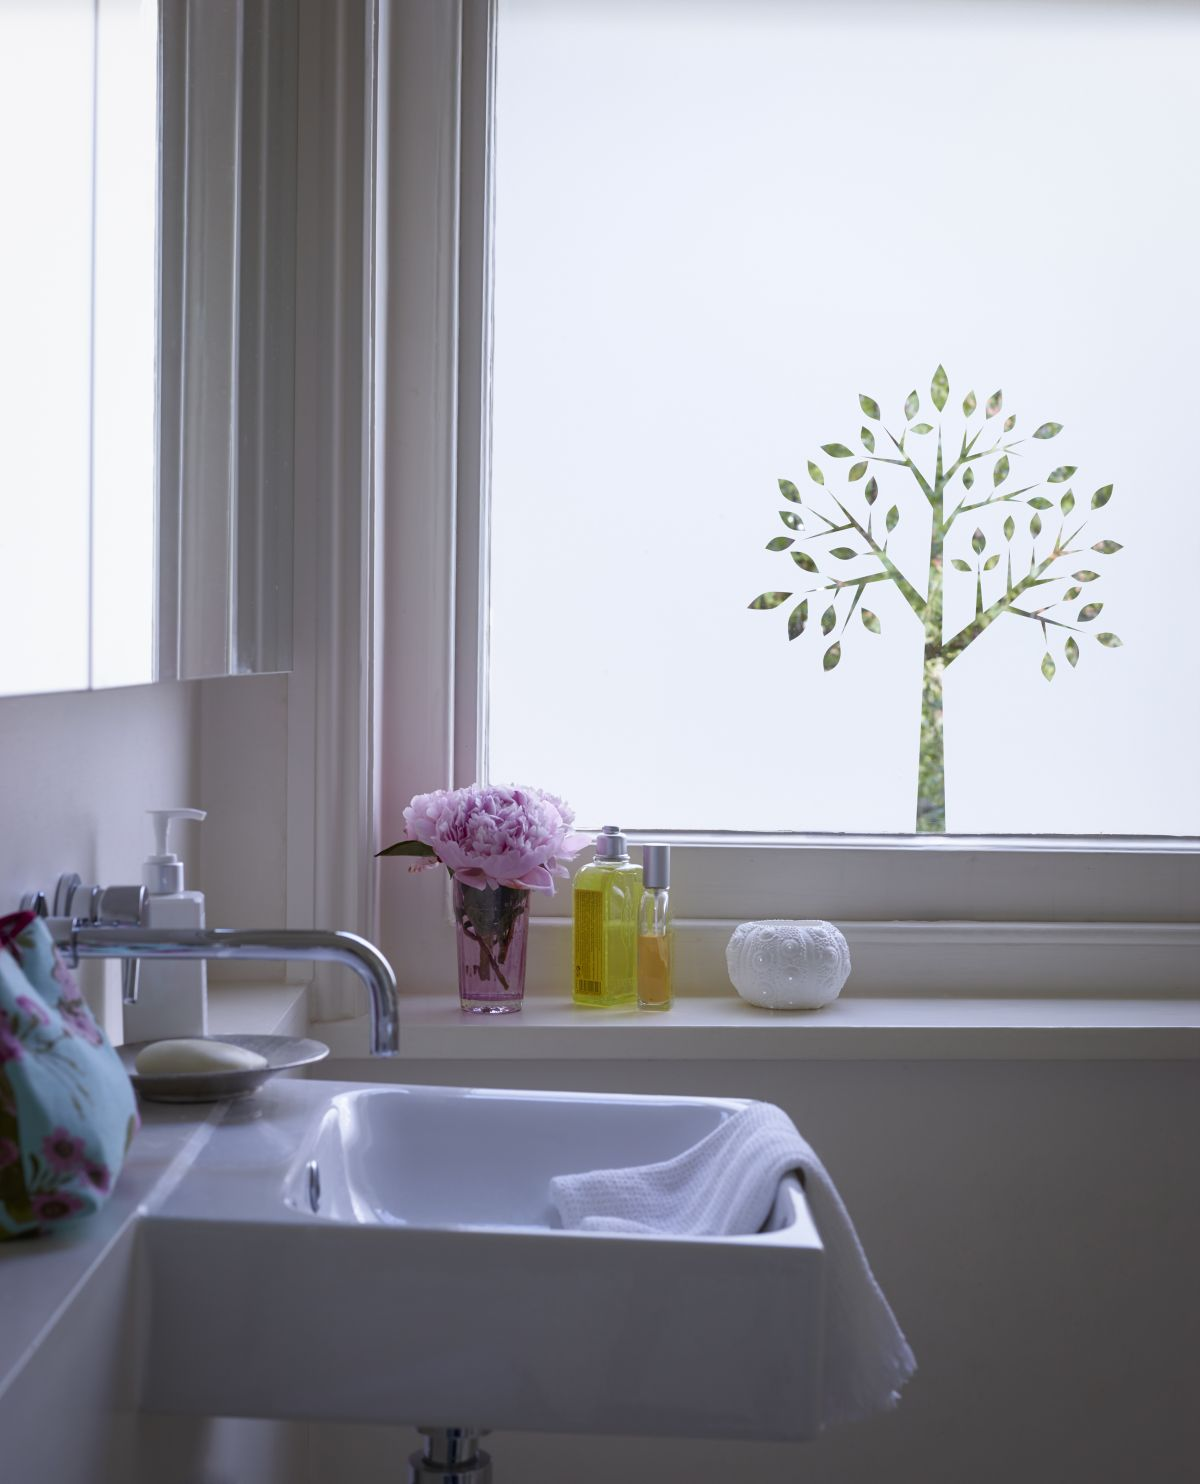 11 Bathroom Window Ideas You Ll Love From Roman Blinds To Colourful Shutters Real Homes